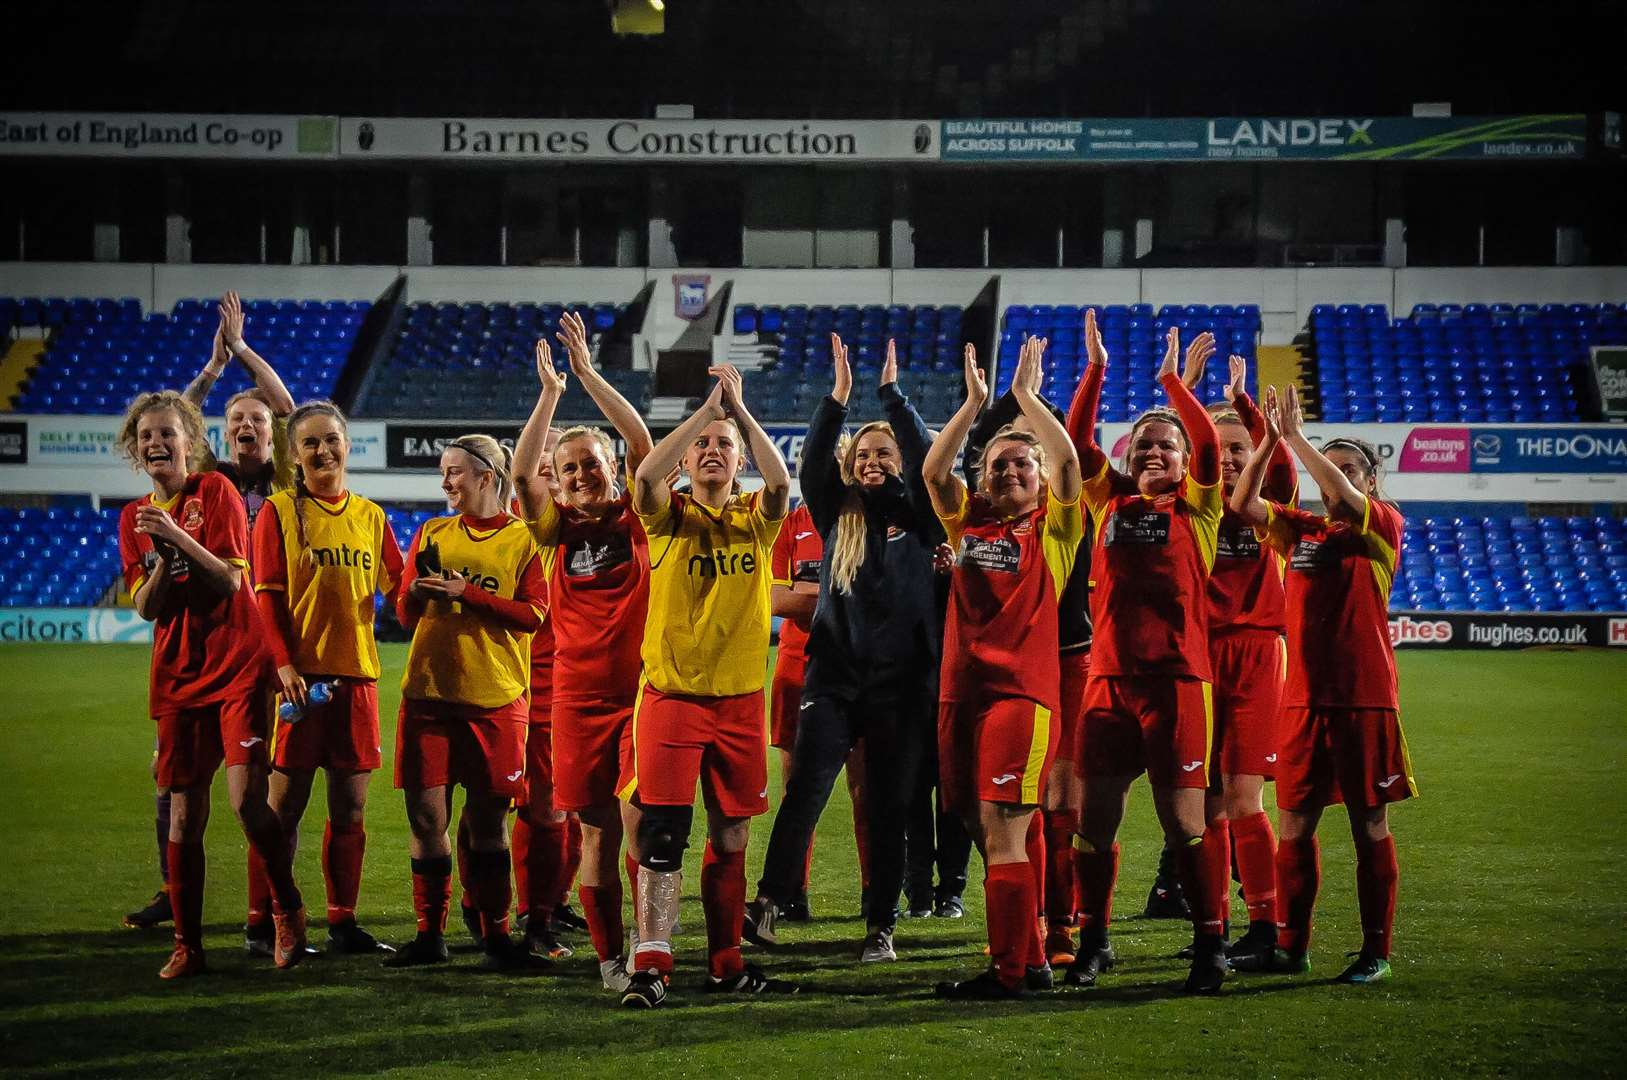 Needham women salute their noisy fans at Portman Road after a clinical display of finishing saw them lose the Suffolk Women's Cup final 8-0 Pictures: Ben Pooley